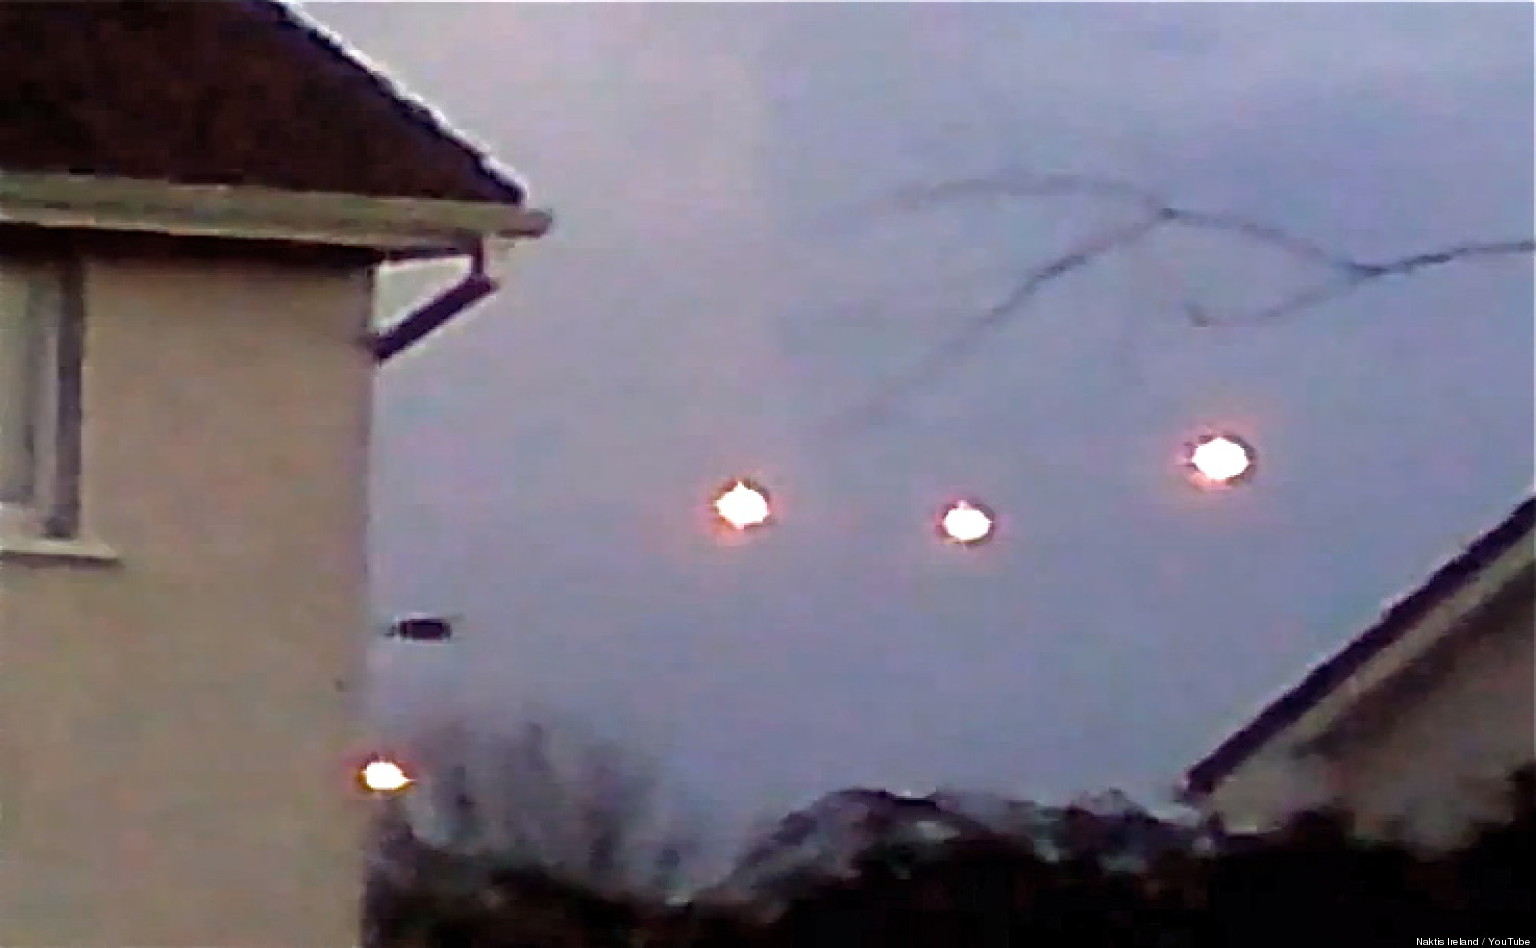 fireball ufos over ireland  clever hoax or unexplained